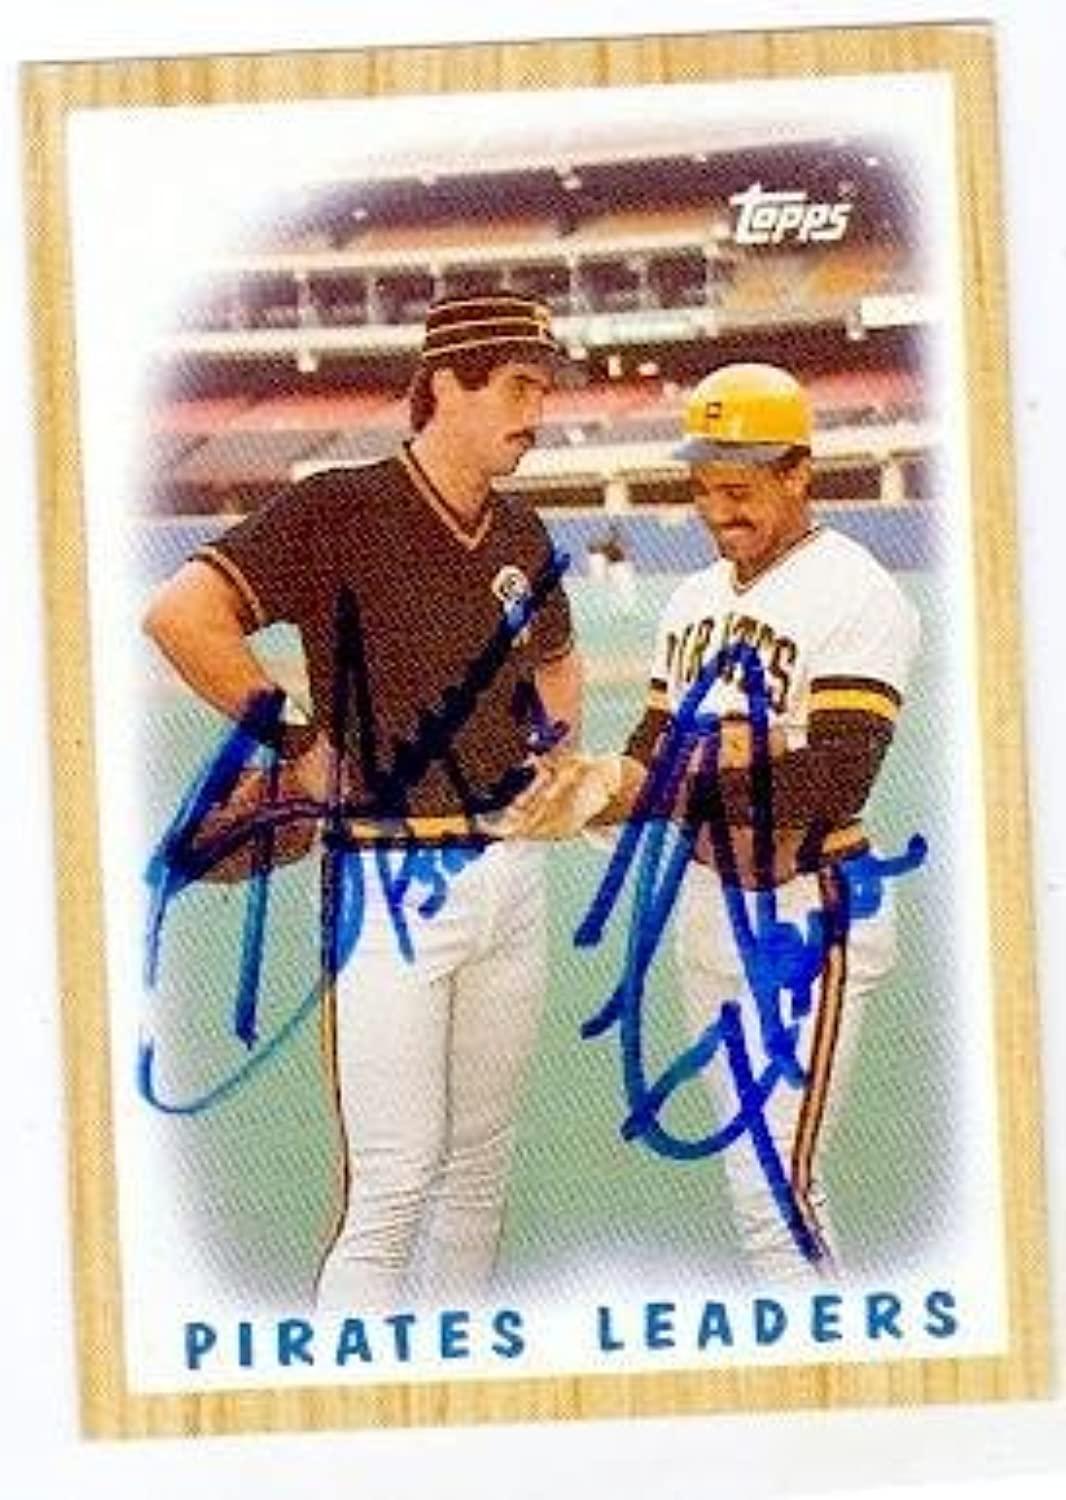 Tony Pena and Sid Bream autographed baseball card (Pittsburgh Pirates) 1987 Topps  131  Autographed Baseball Cards